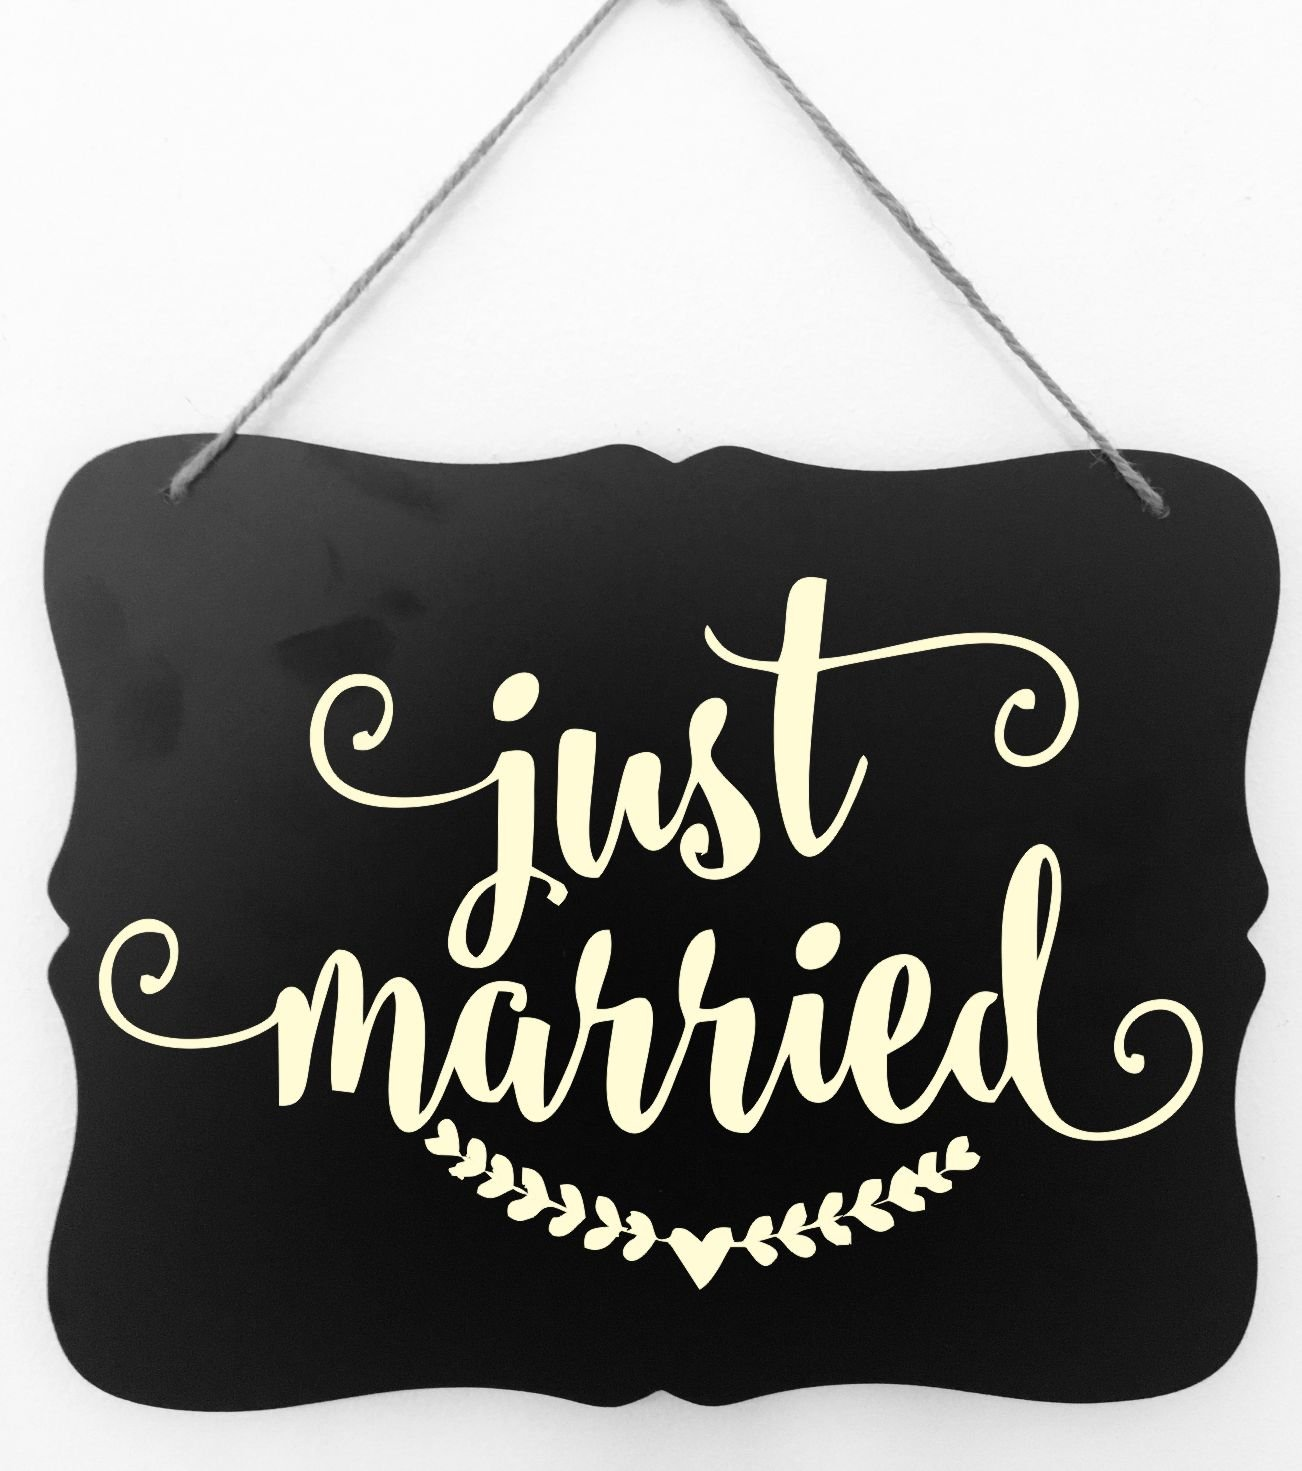 SQUARE NOTCHED CHALKBOARD WEDDING SIGN WEDDING GIFT FARMHOUSE COUNTRY WEDDING DECOR BRIDAL GIFT by Heartland Country Decor ANNIVERSARY GIFT JUST MARRIED